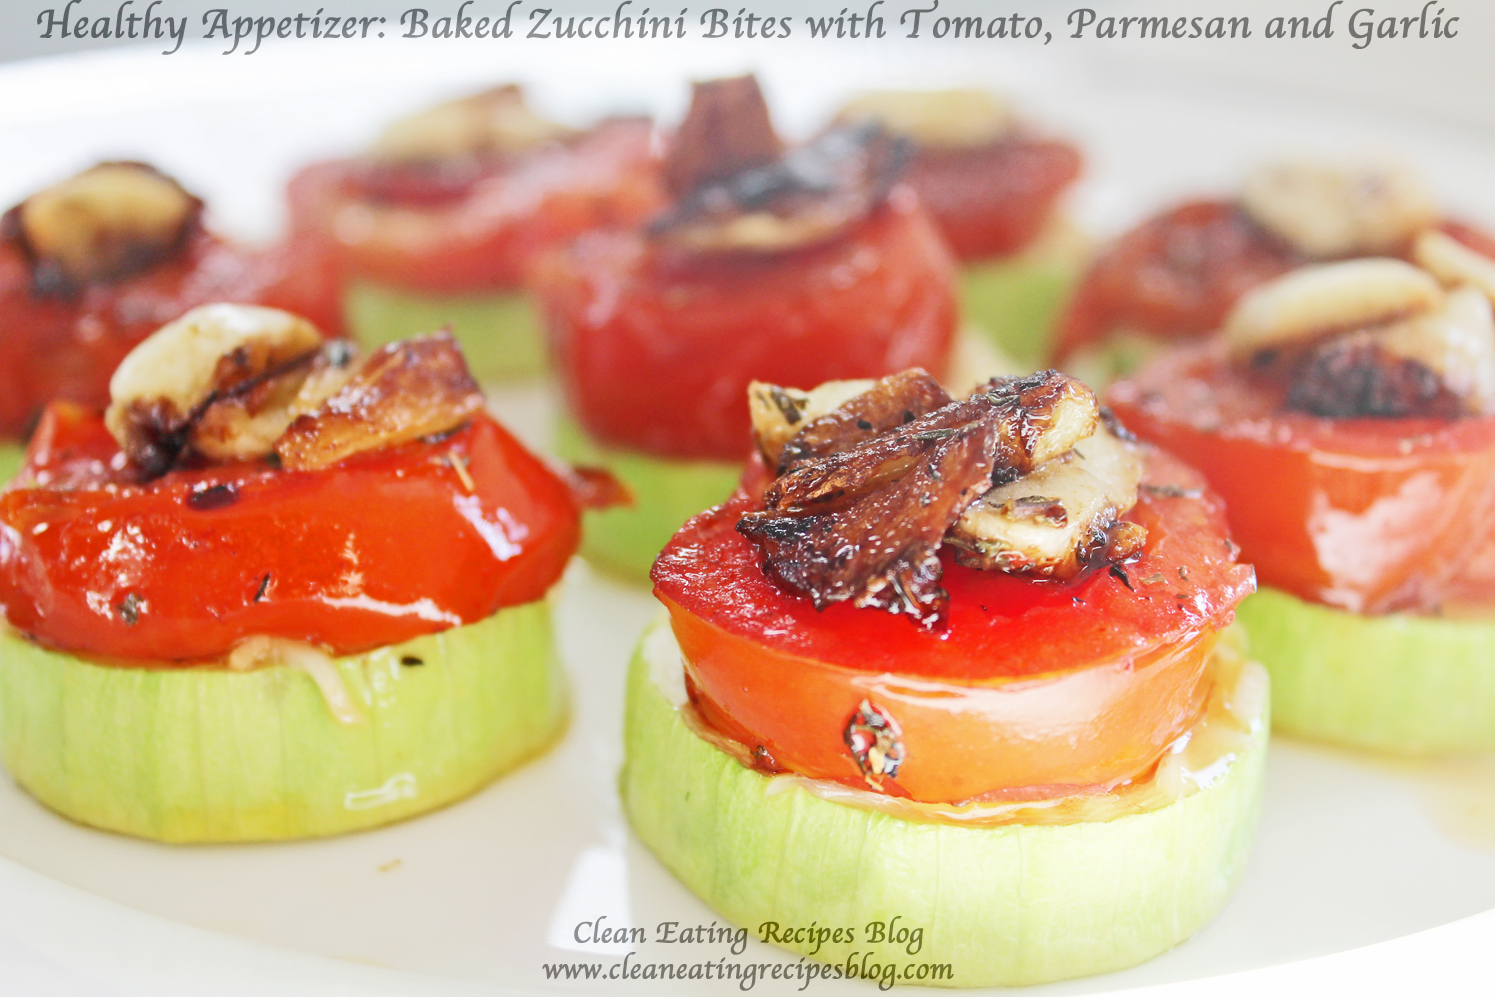 Healthy Appetizer for Clean Eating: Baked Zucchini with Garlic, Tomato and Parmesan